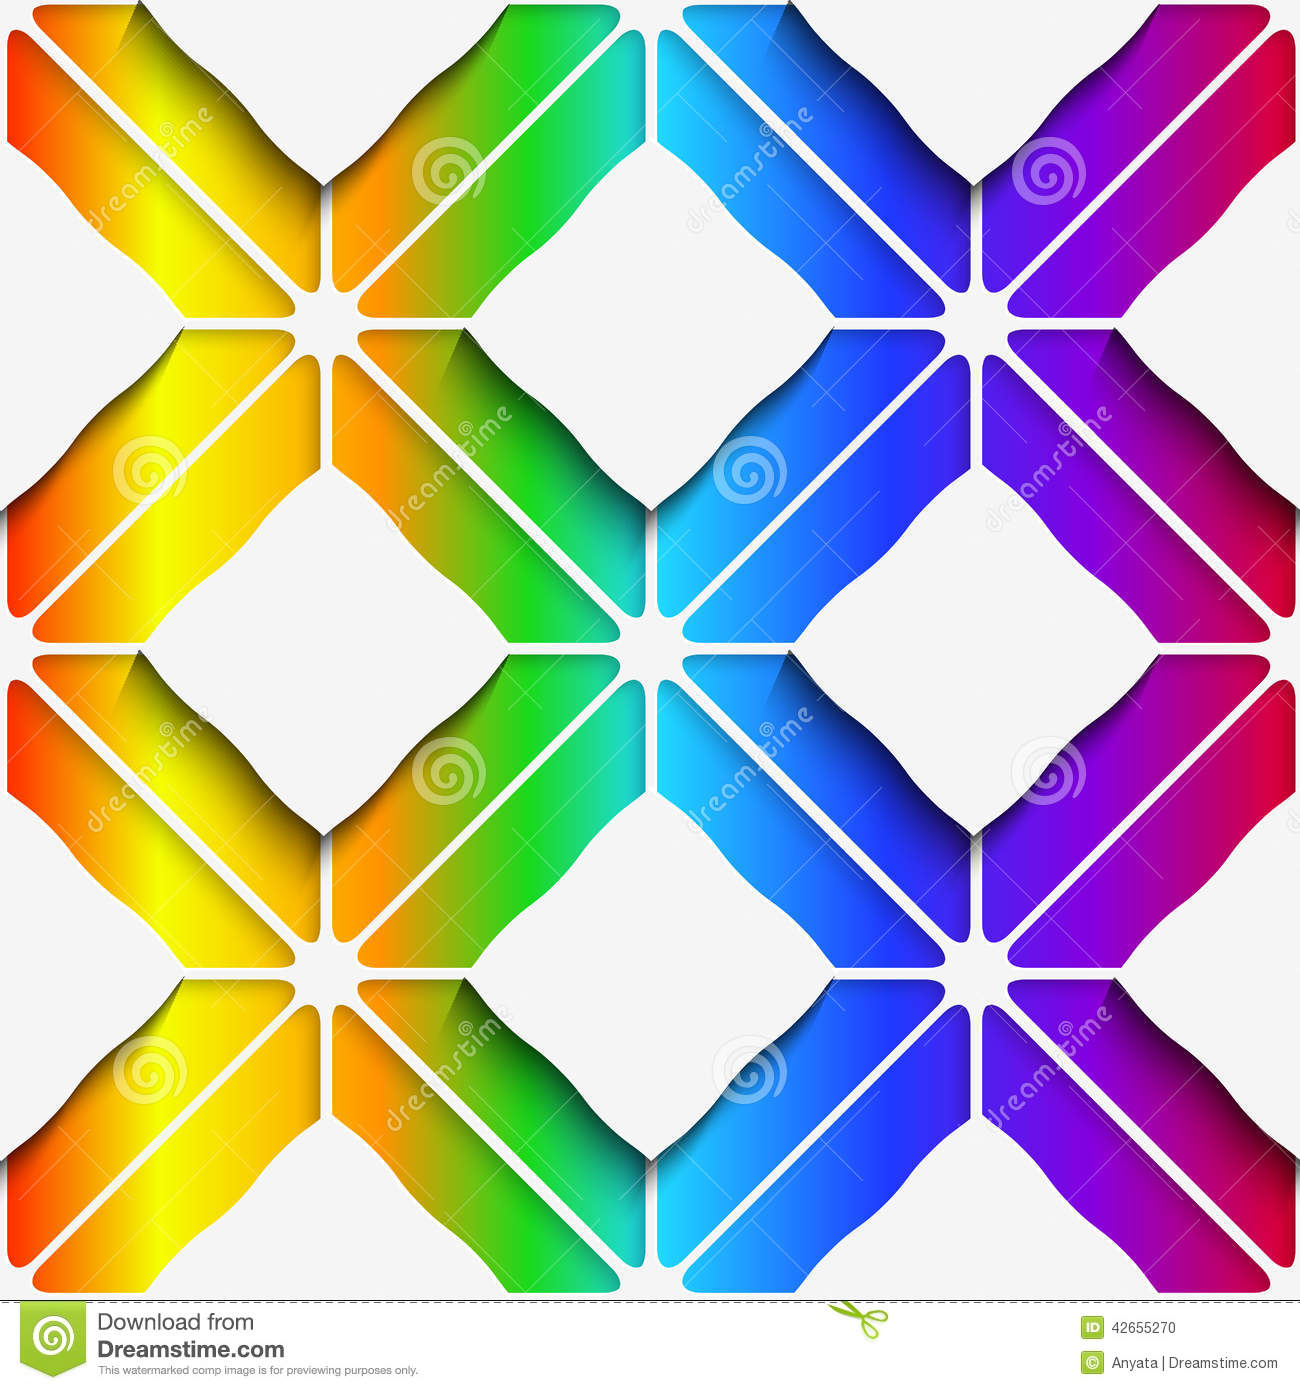 White rectangles ornament on rainbow background seamless pattern